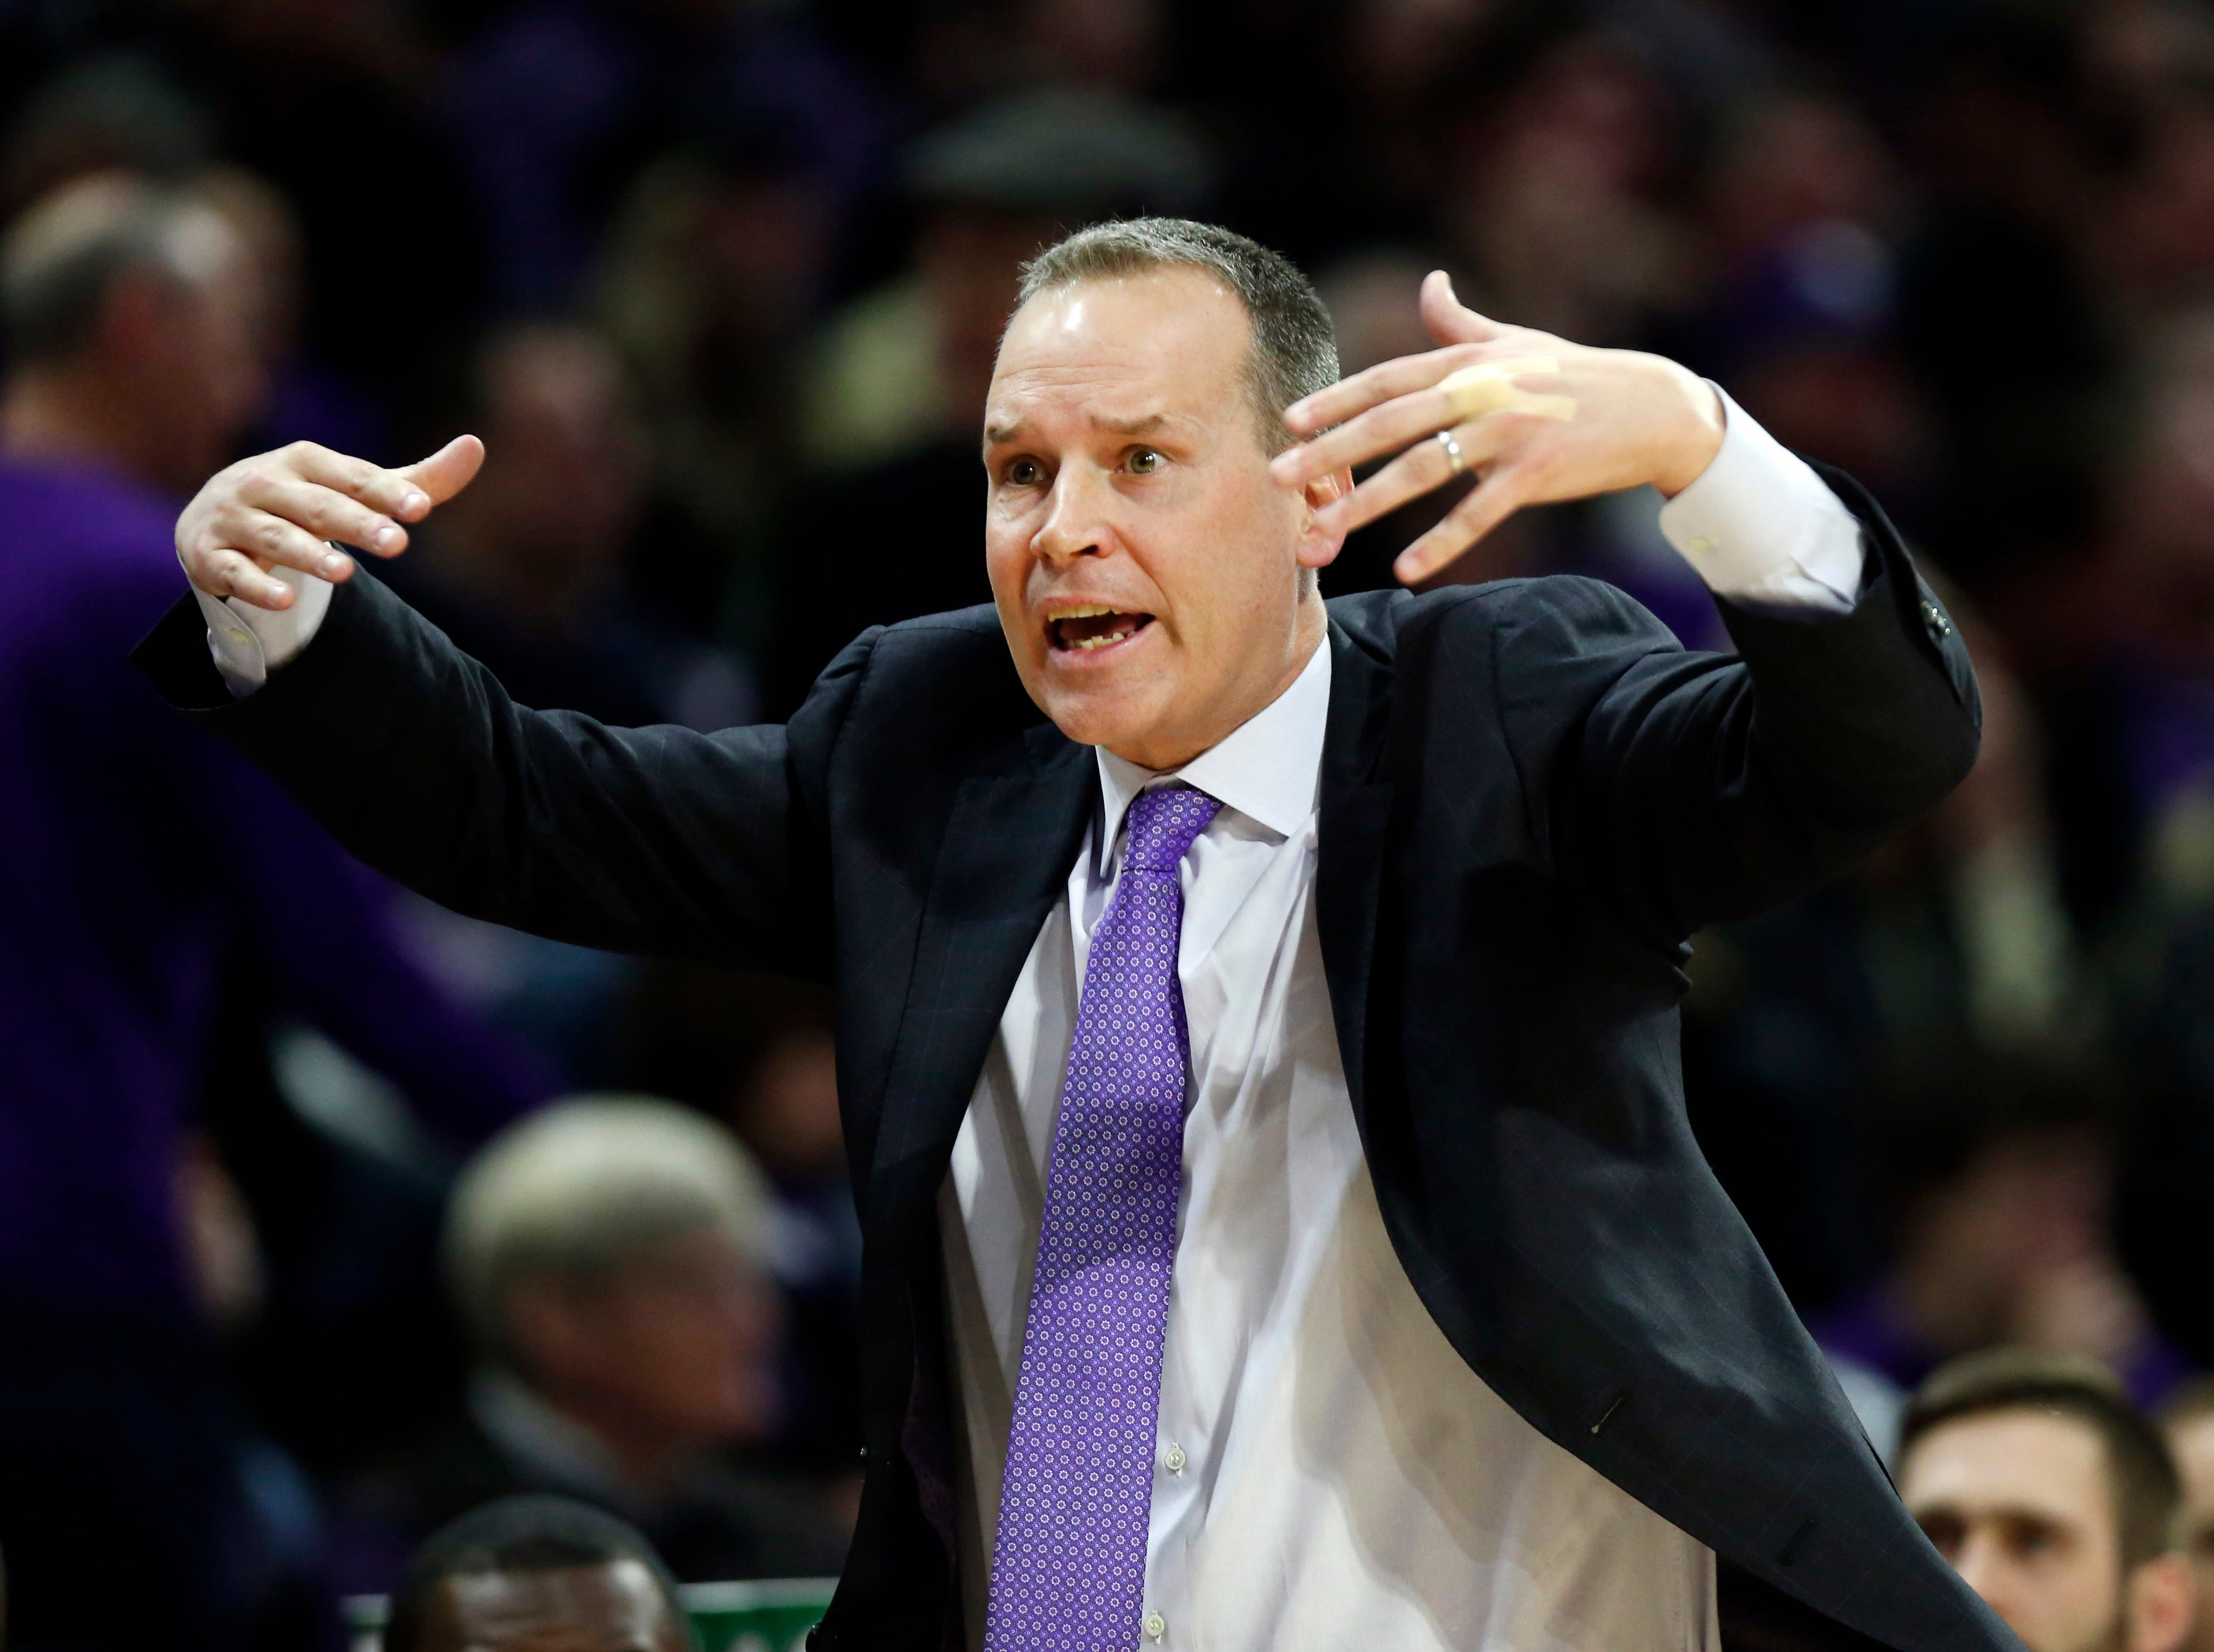 Mar 9, 2019; Evanston, IL, USA; Northwestern Wildcats head coach Chris Collins during the first half of his team's game against the Purdue Boilermakers at Welsh-Ryan Arena. Mandatory Credit: Nuccio DiNuzzo-USA TODAY Sports